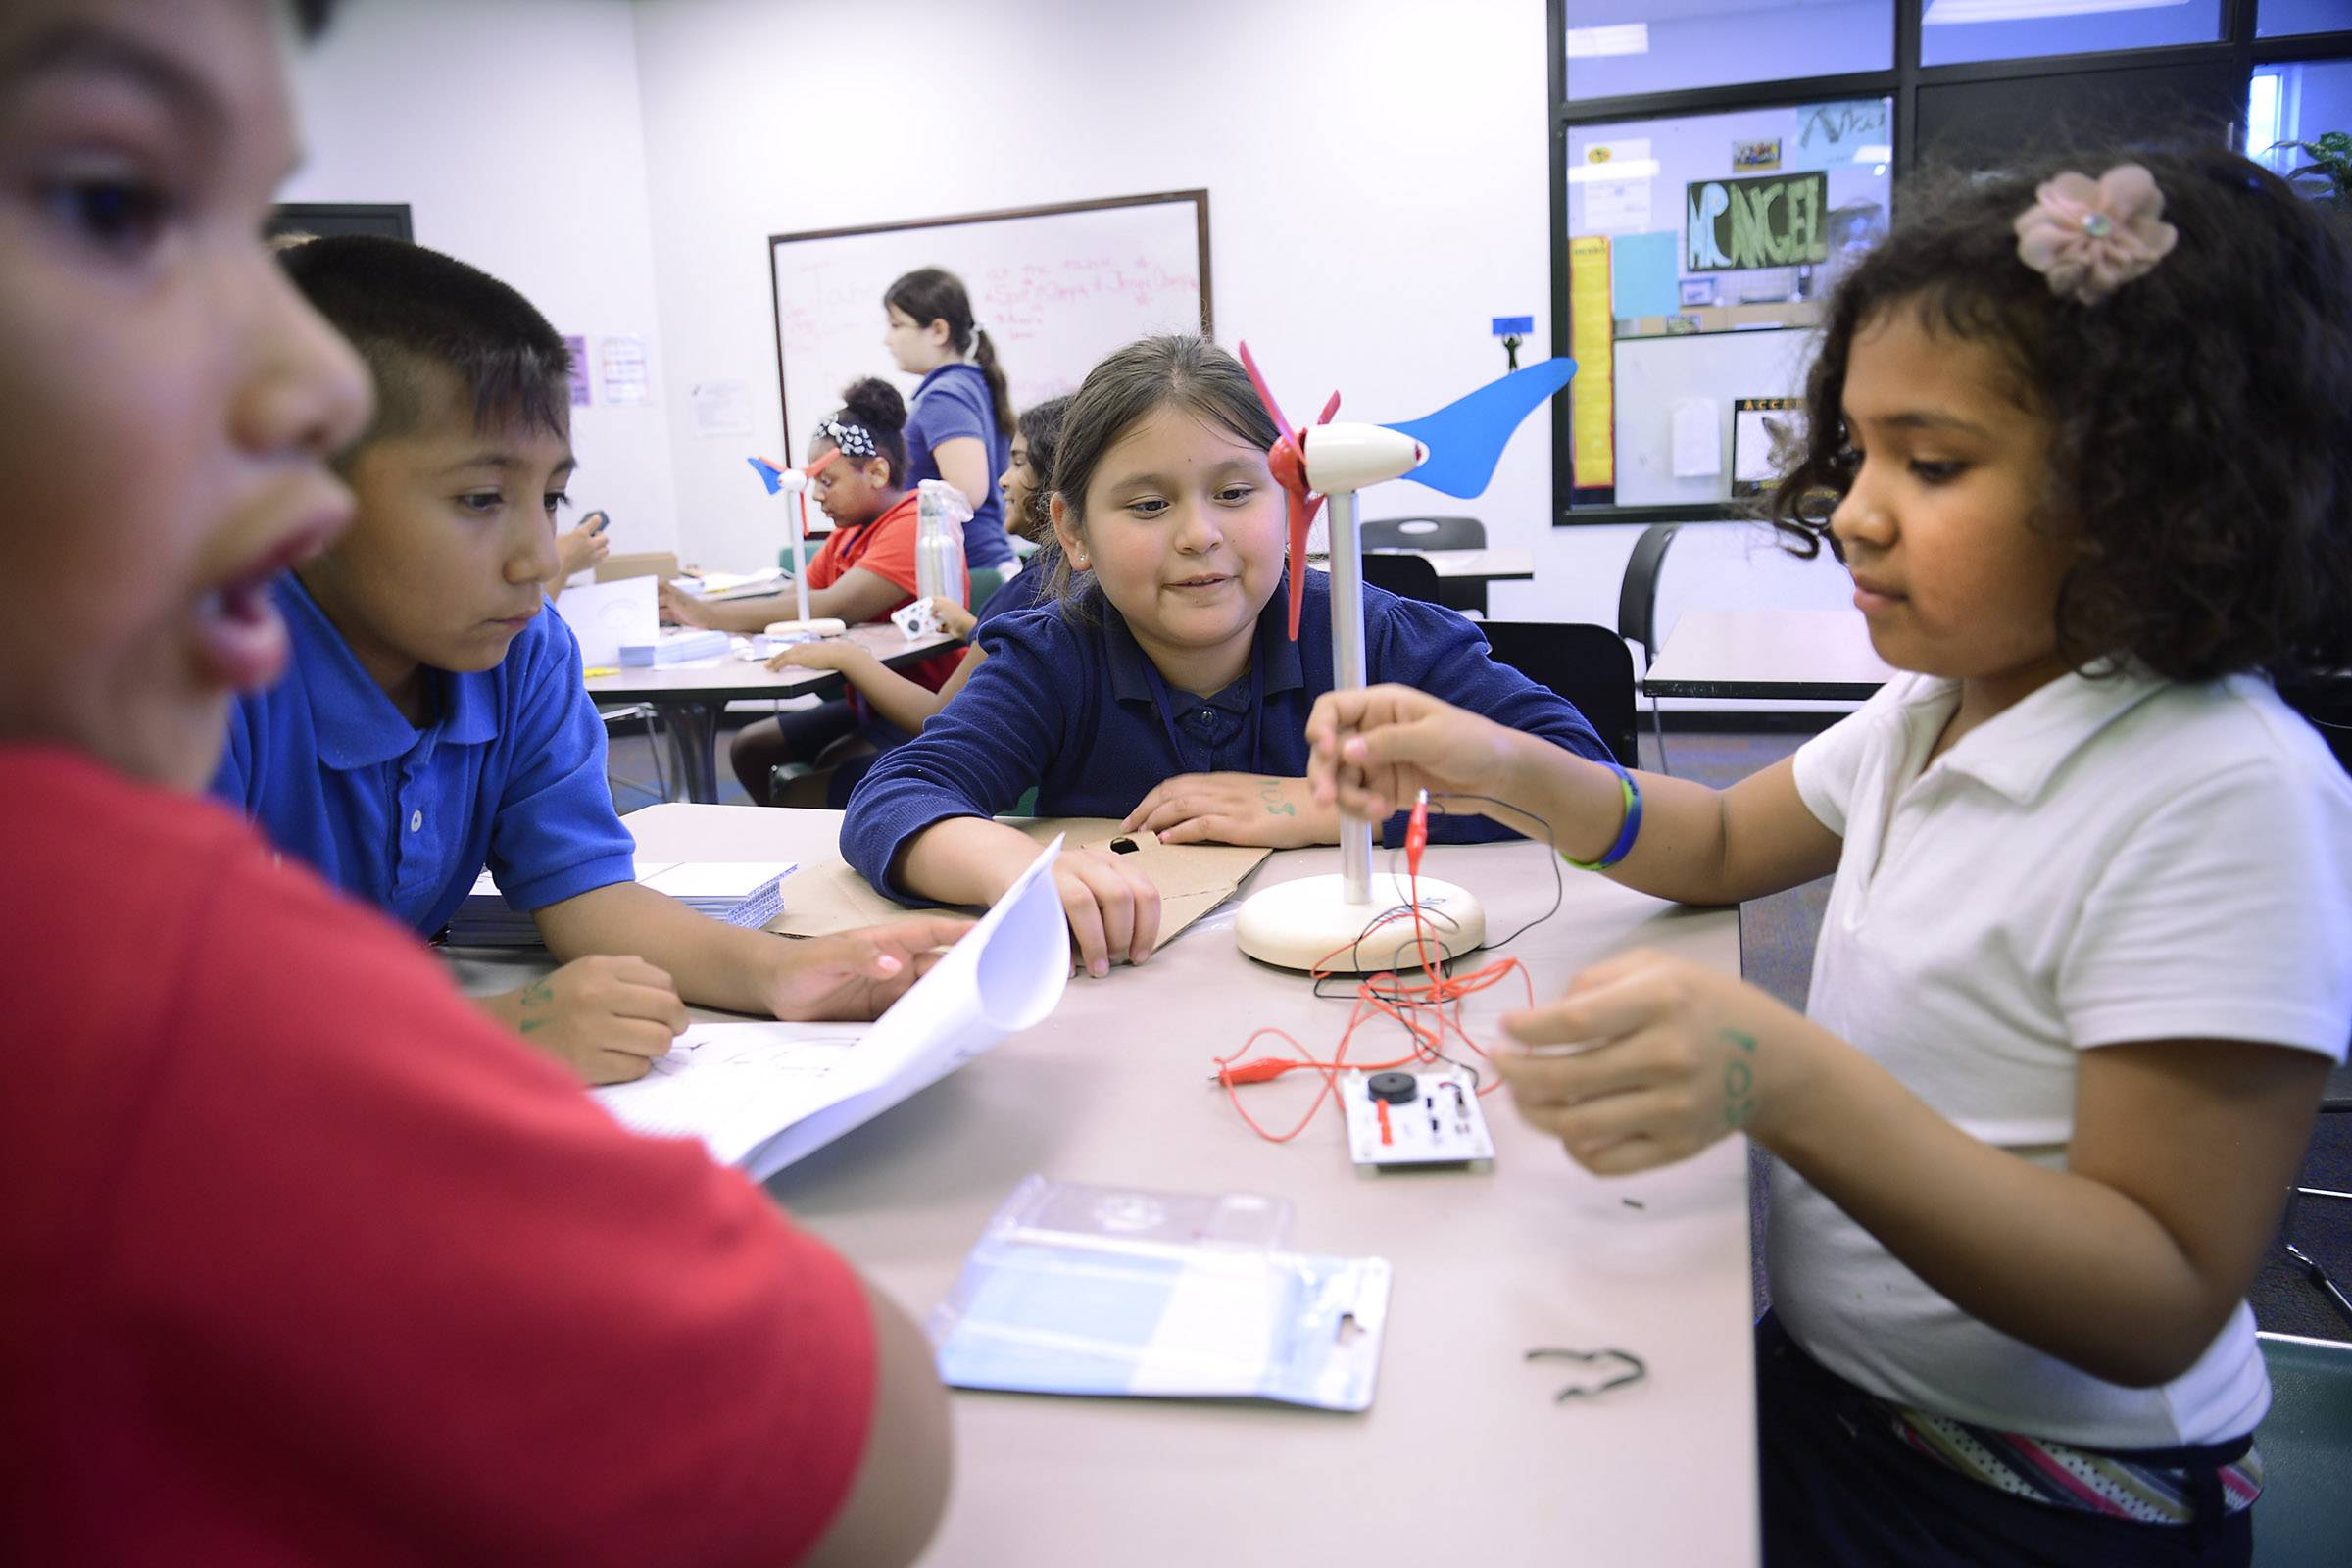 Oscar Jimenez, 9, left, Ryan Morales, 8, Coral Lopez, 8, and Dania Uribe, 8, right, work on their miniature wind turbine project at the Boys & Girls Club of Elgin Tuesday. Siemens USA brought their STEM (Science, Technology, Engineering and Math) program to the club and gave third and fourth graders the opportunity to build models of wind turbines as they learned about clean energy and possible careers in technology.